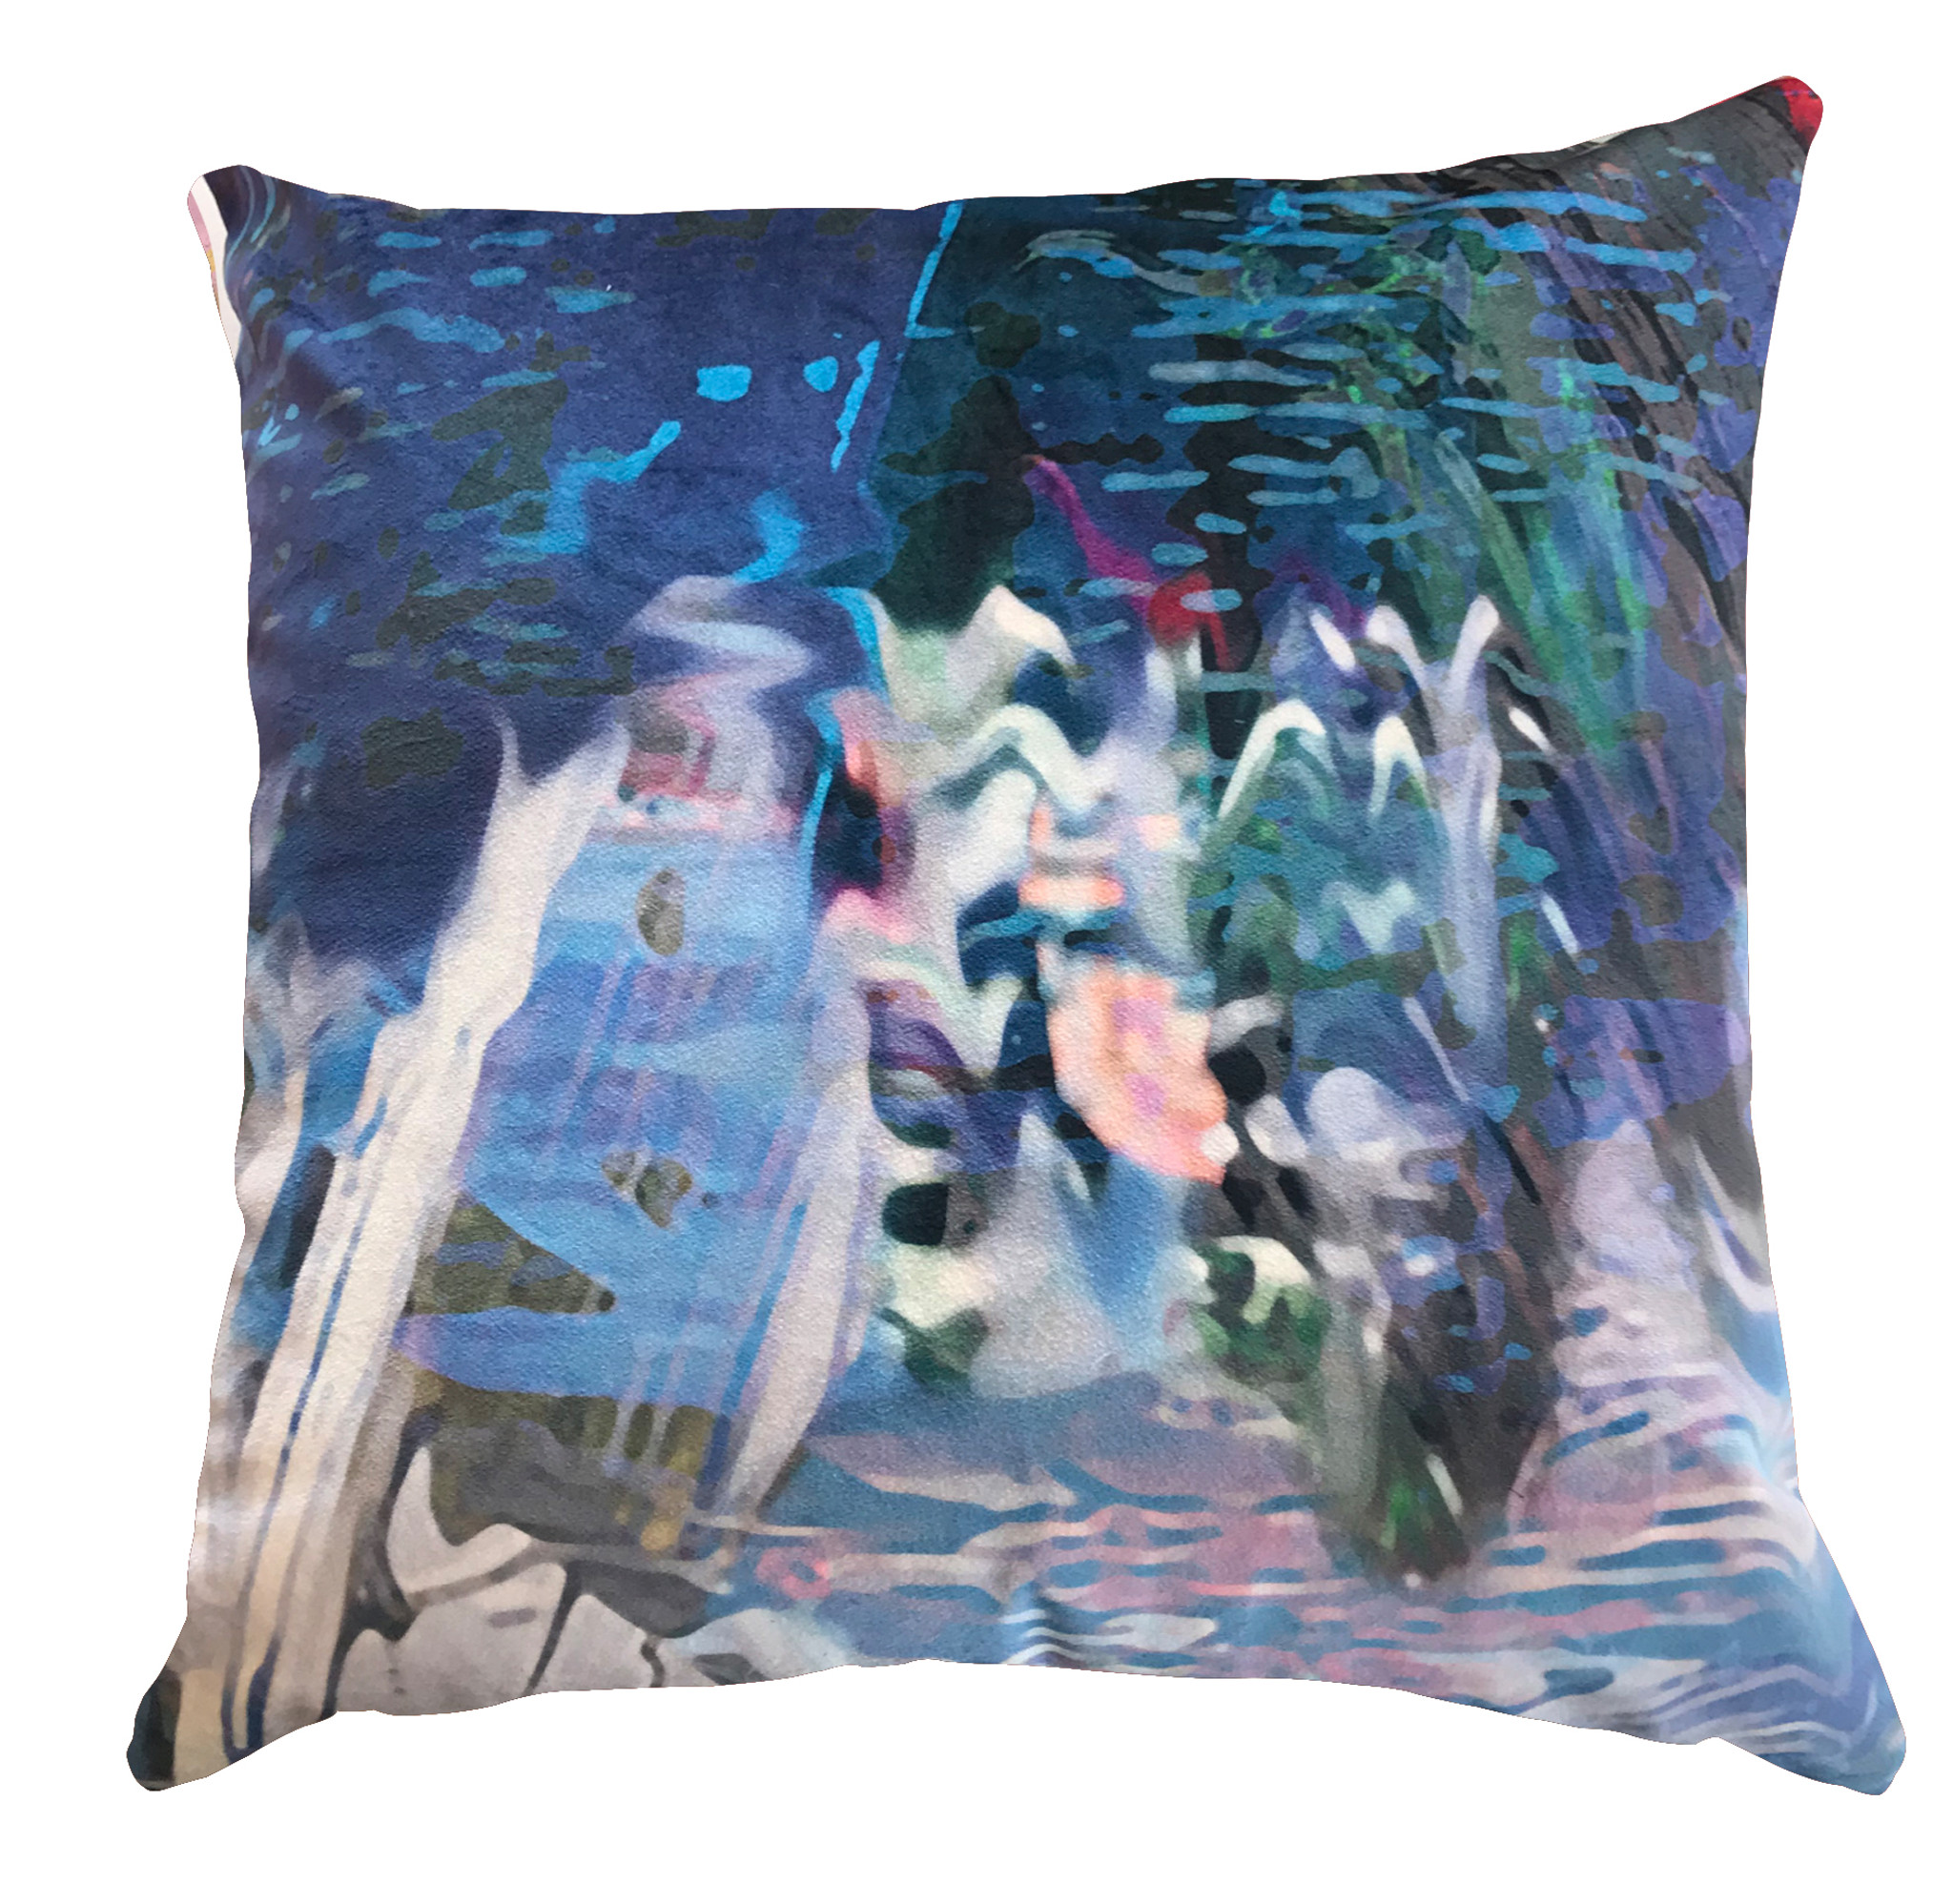 Cushion Cover - Blurred Vision- Refraction